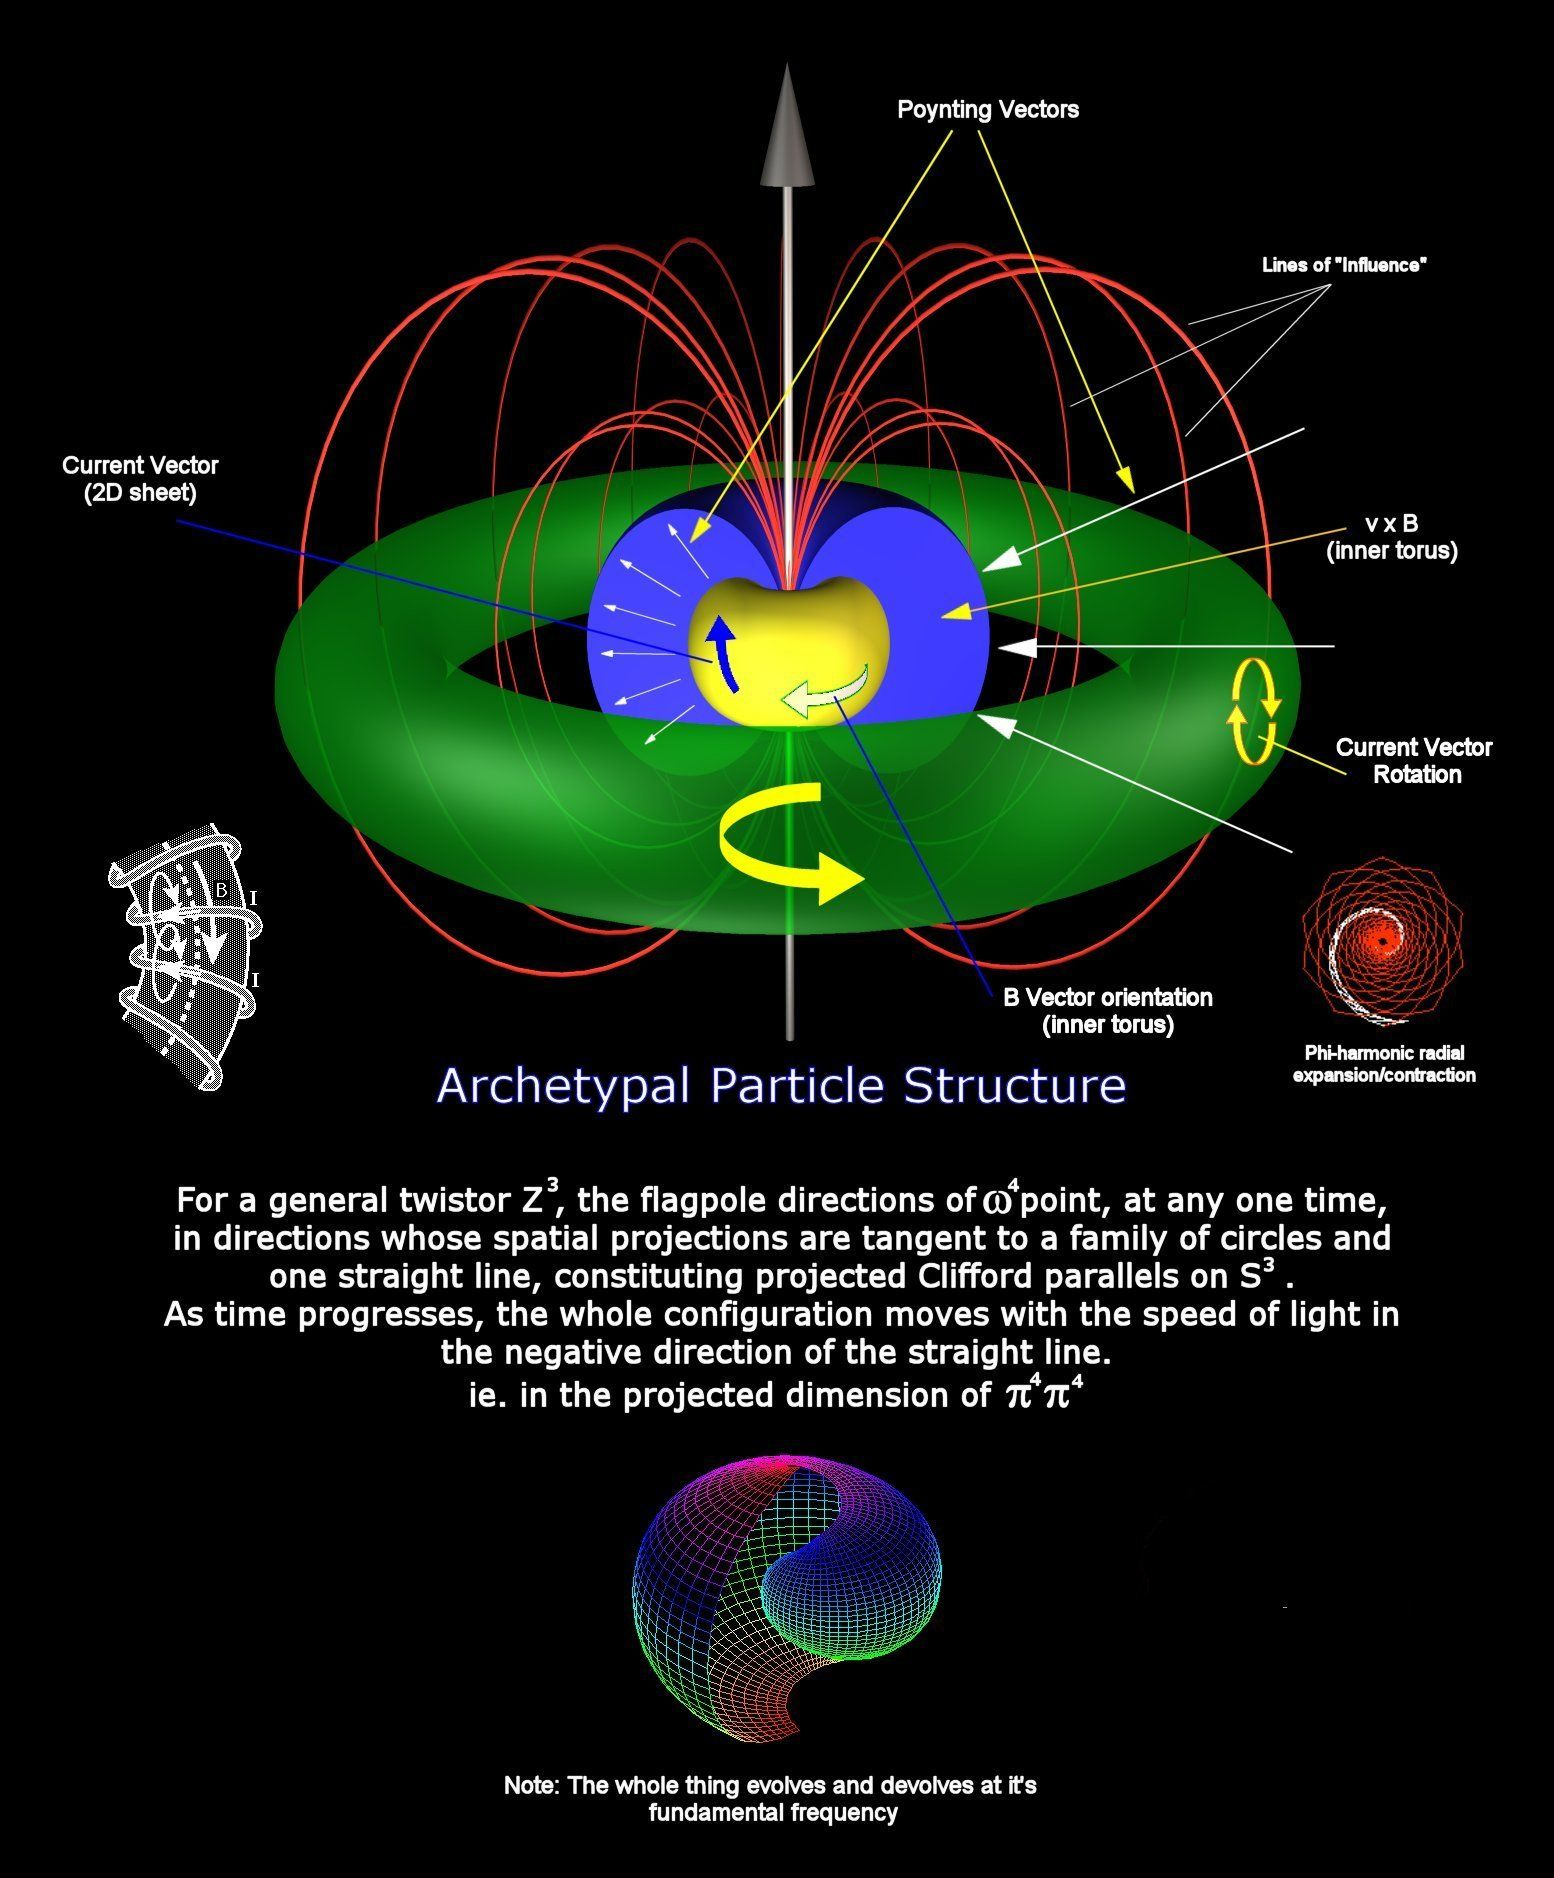 hight resolution of archetypal particle structure physics and mathematics modern physics quantum physics atomic theory